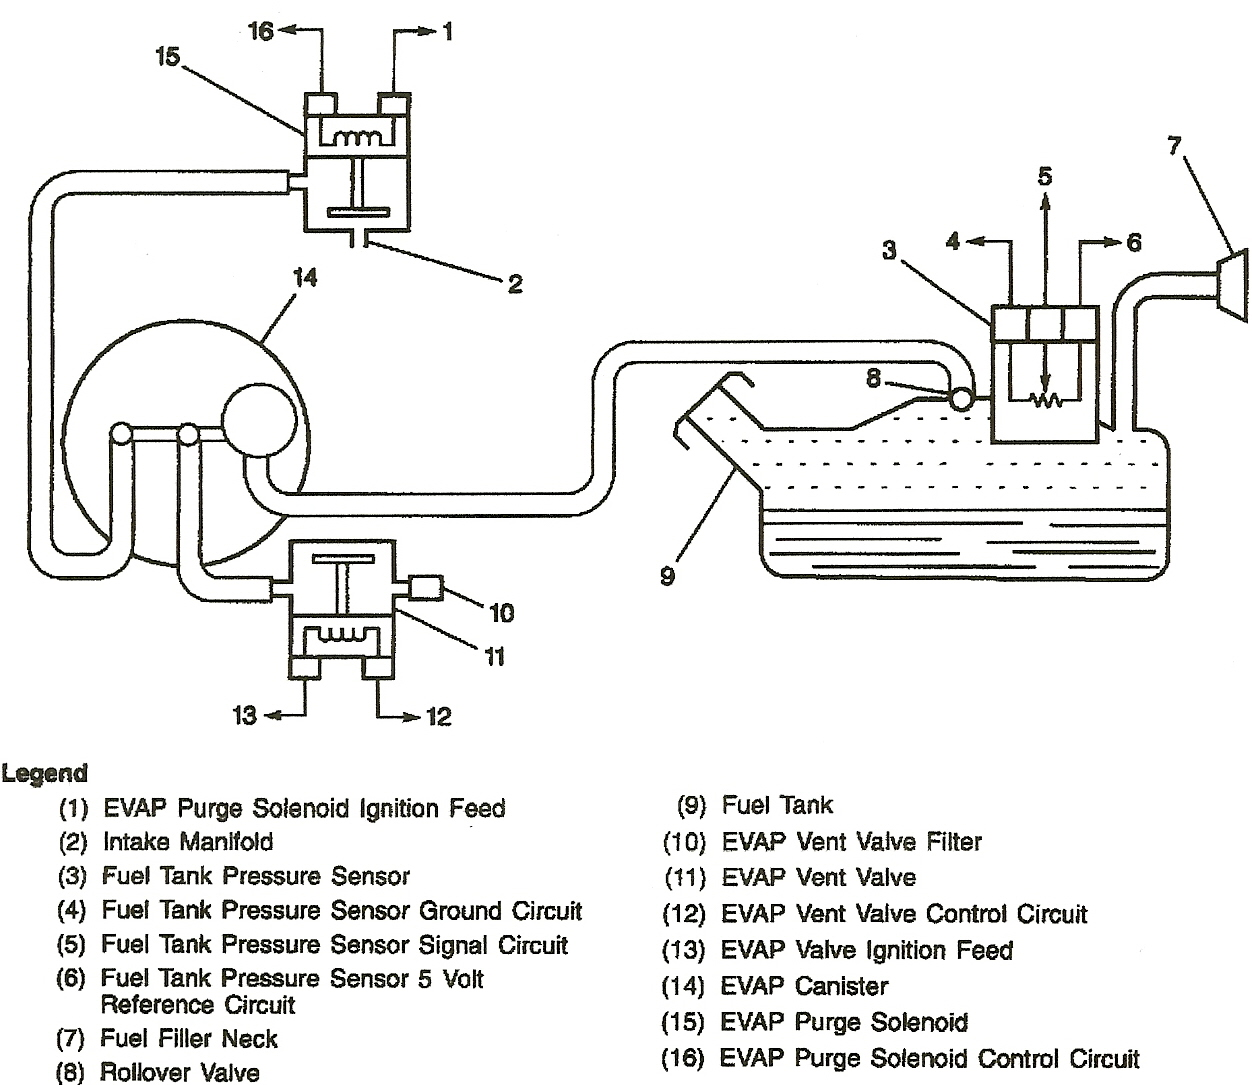 Evap Vacuum Diagram Great Design Of Wiring Gm Fuel Pressure Impala Get Free Image About Ford Control 99 Chevy System